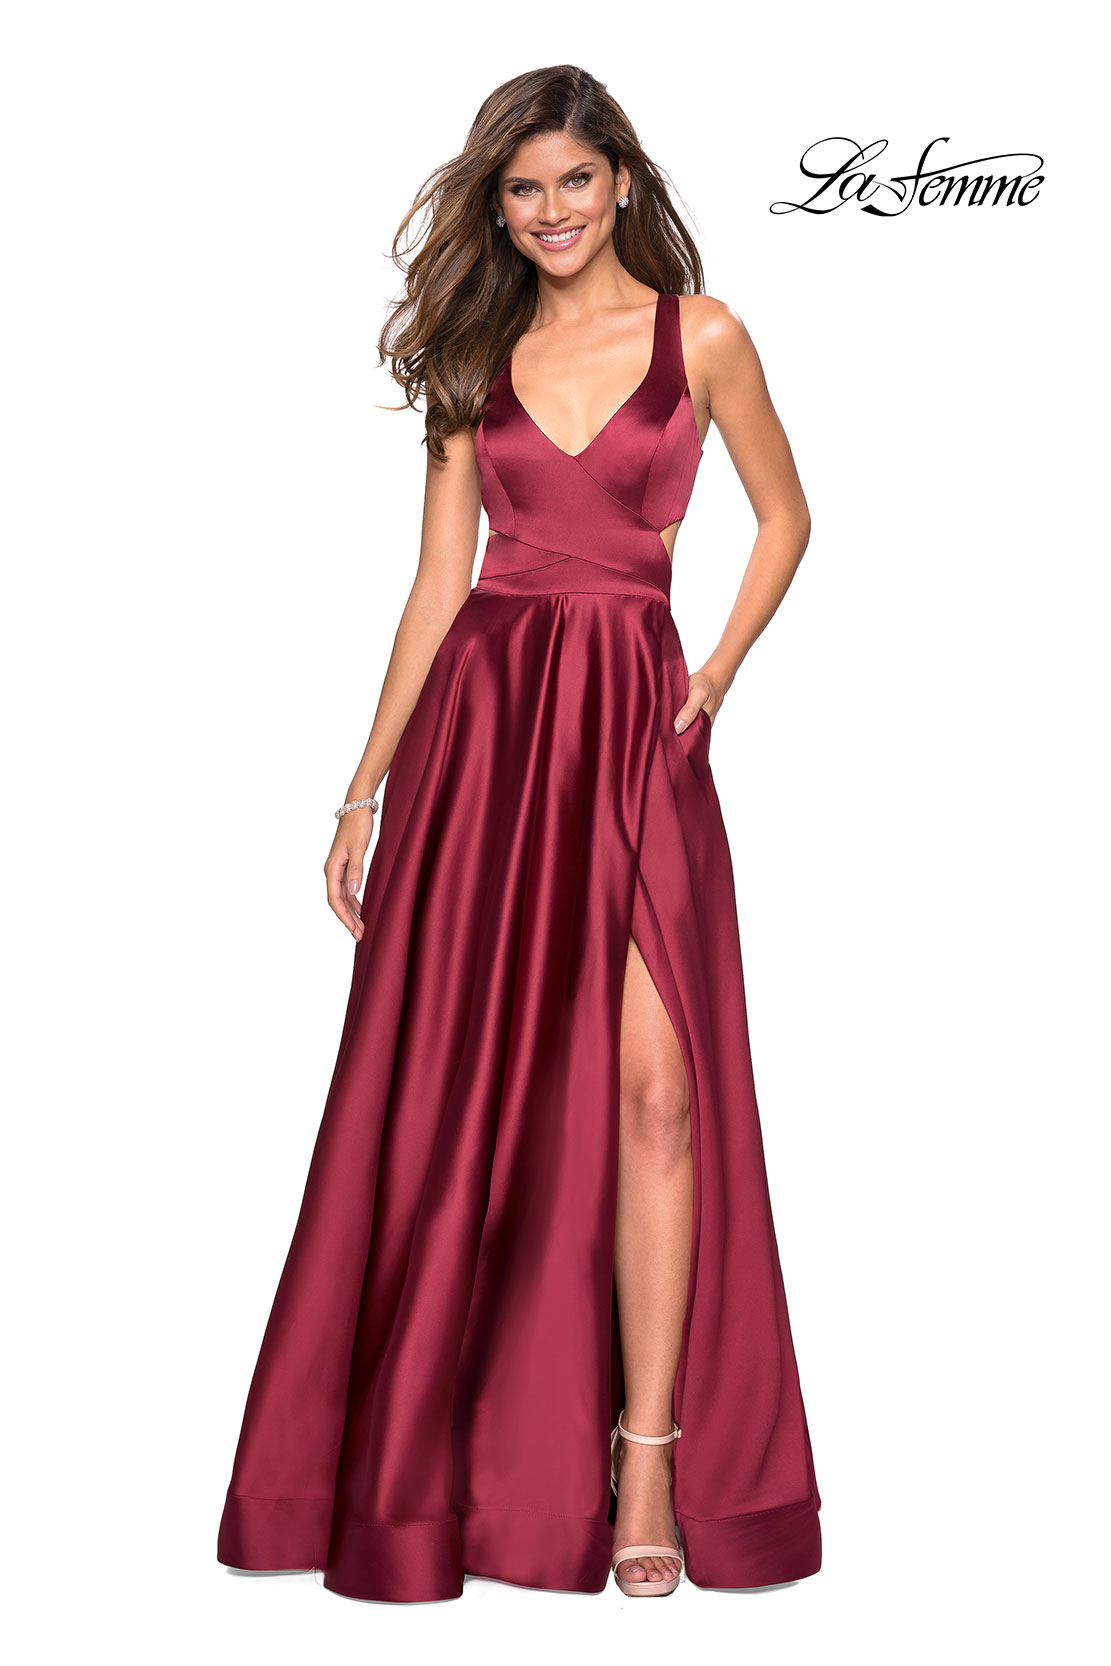 6f9e76c04f Picture of  Metallic Satin Dress with Wrap Around Top and Pockets